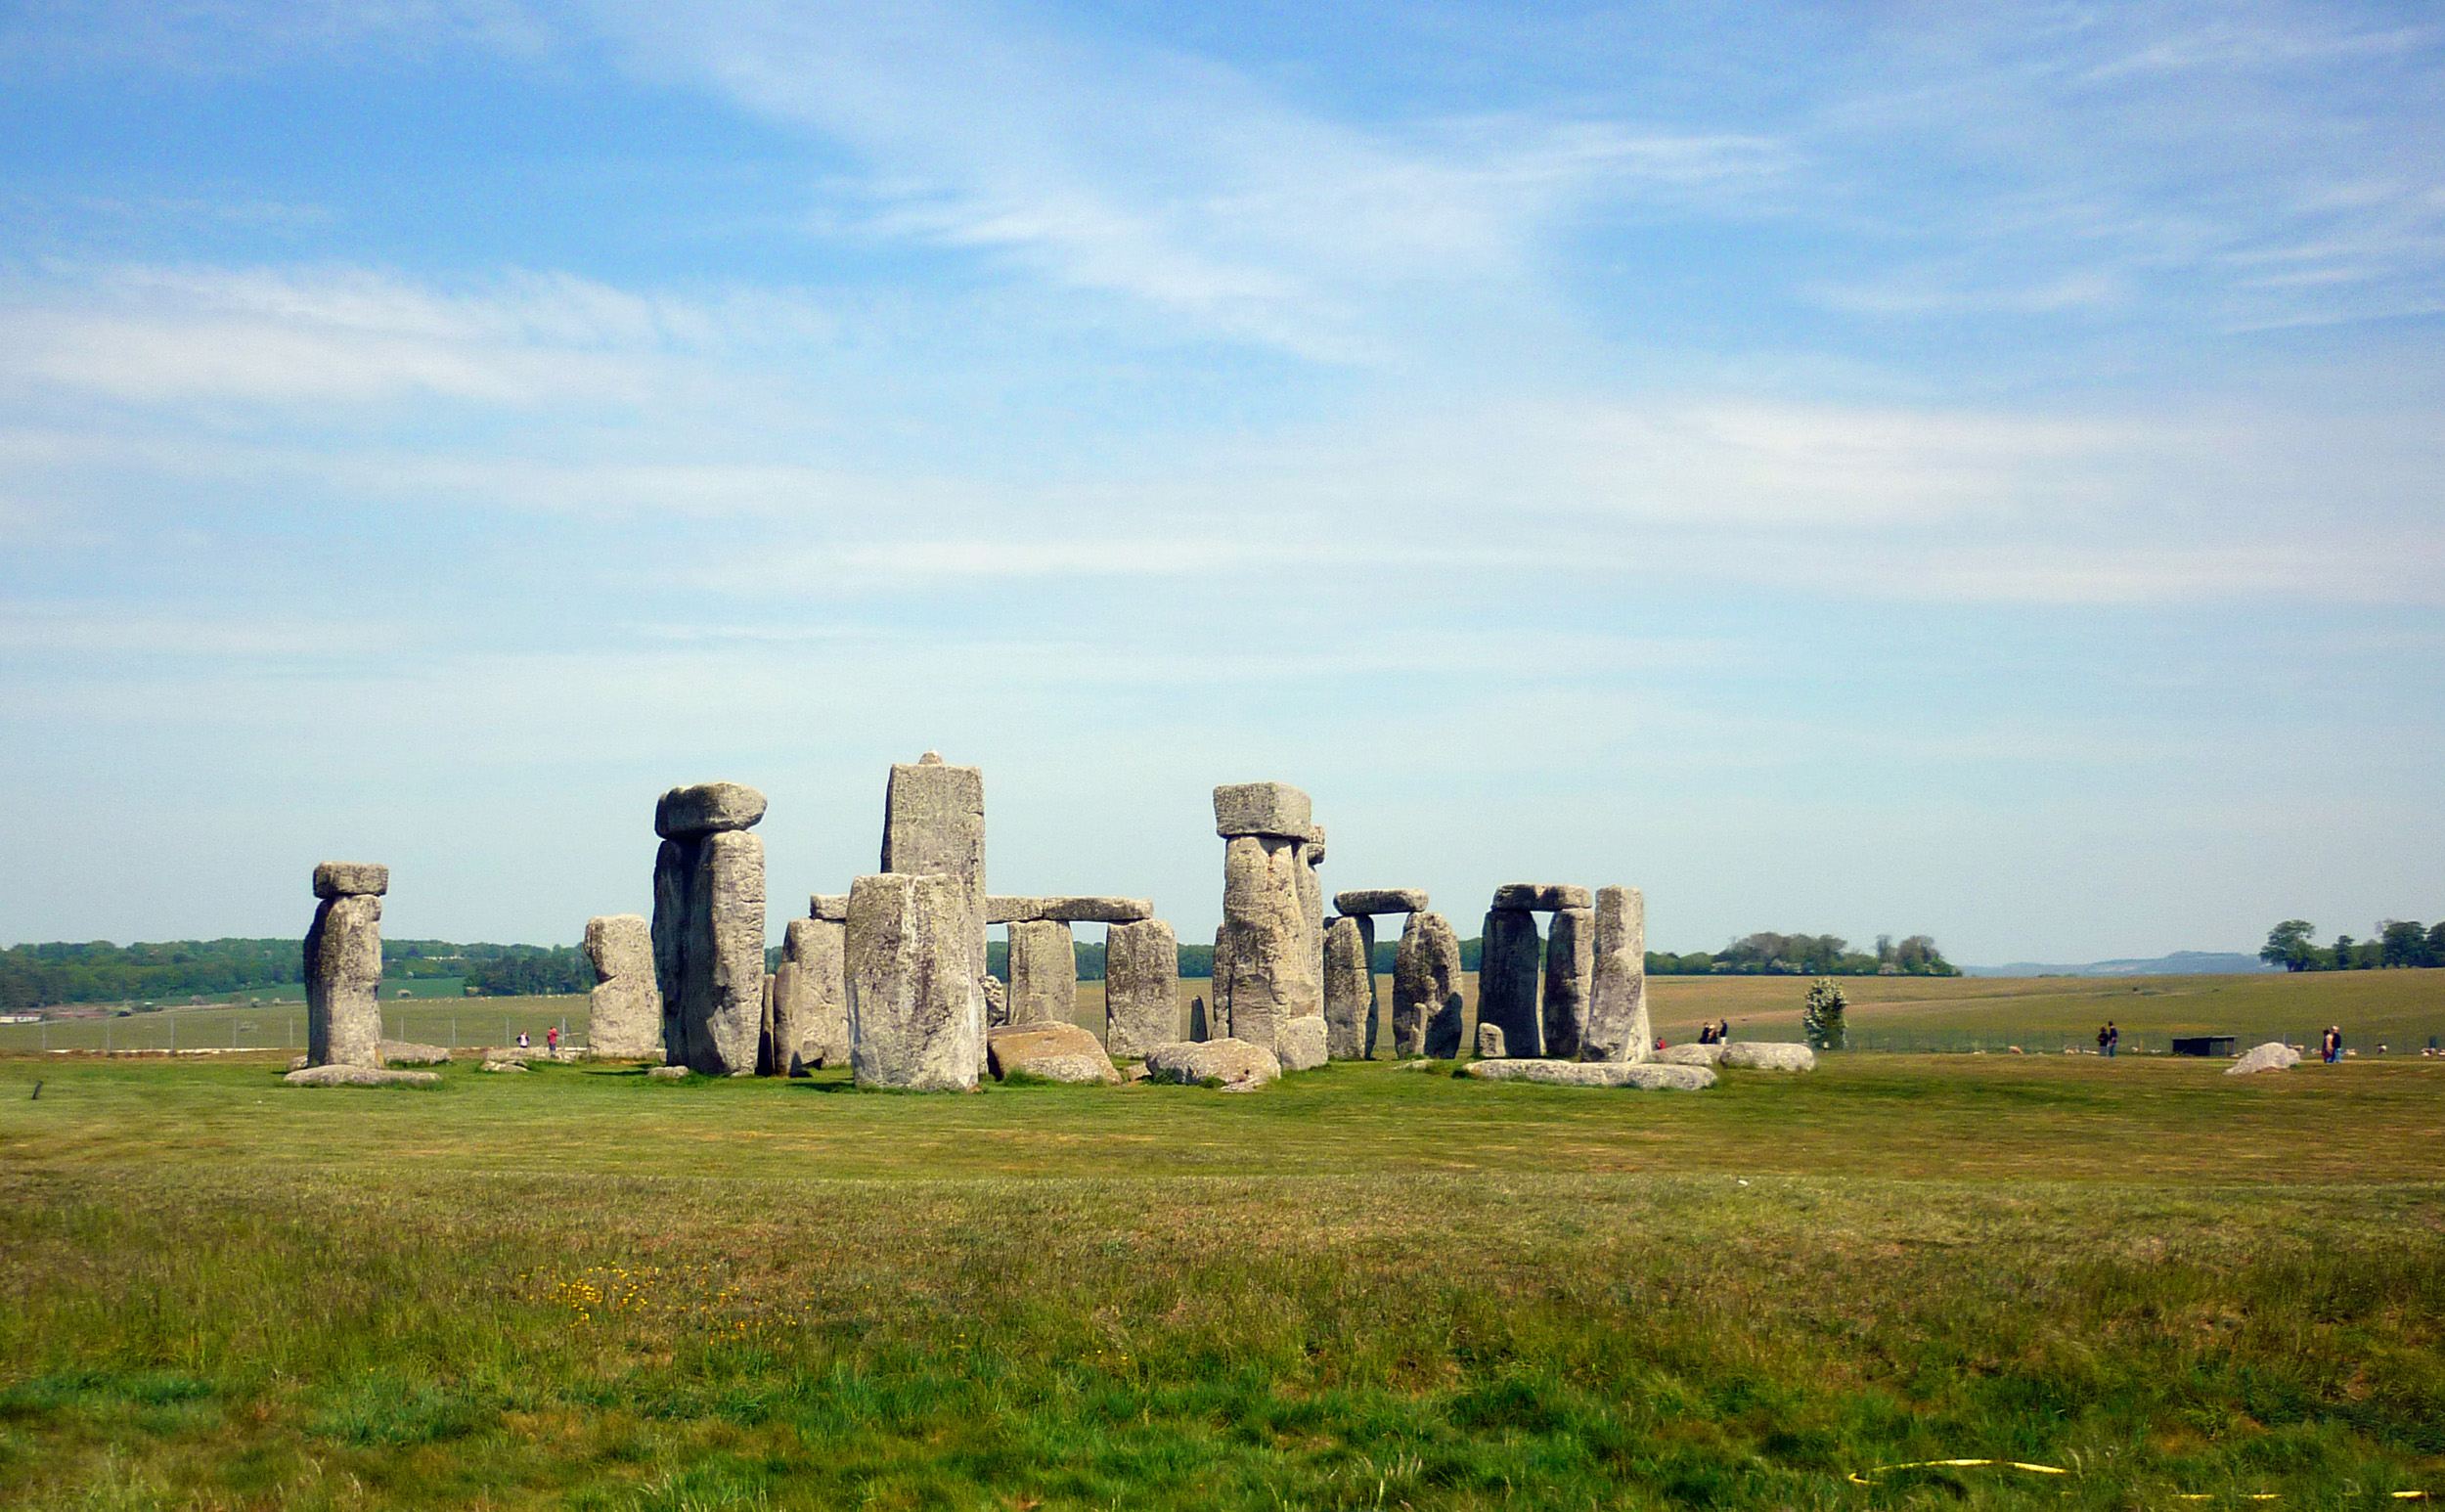 a view of stonehenge in the daytime